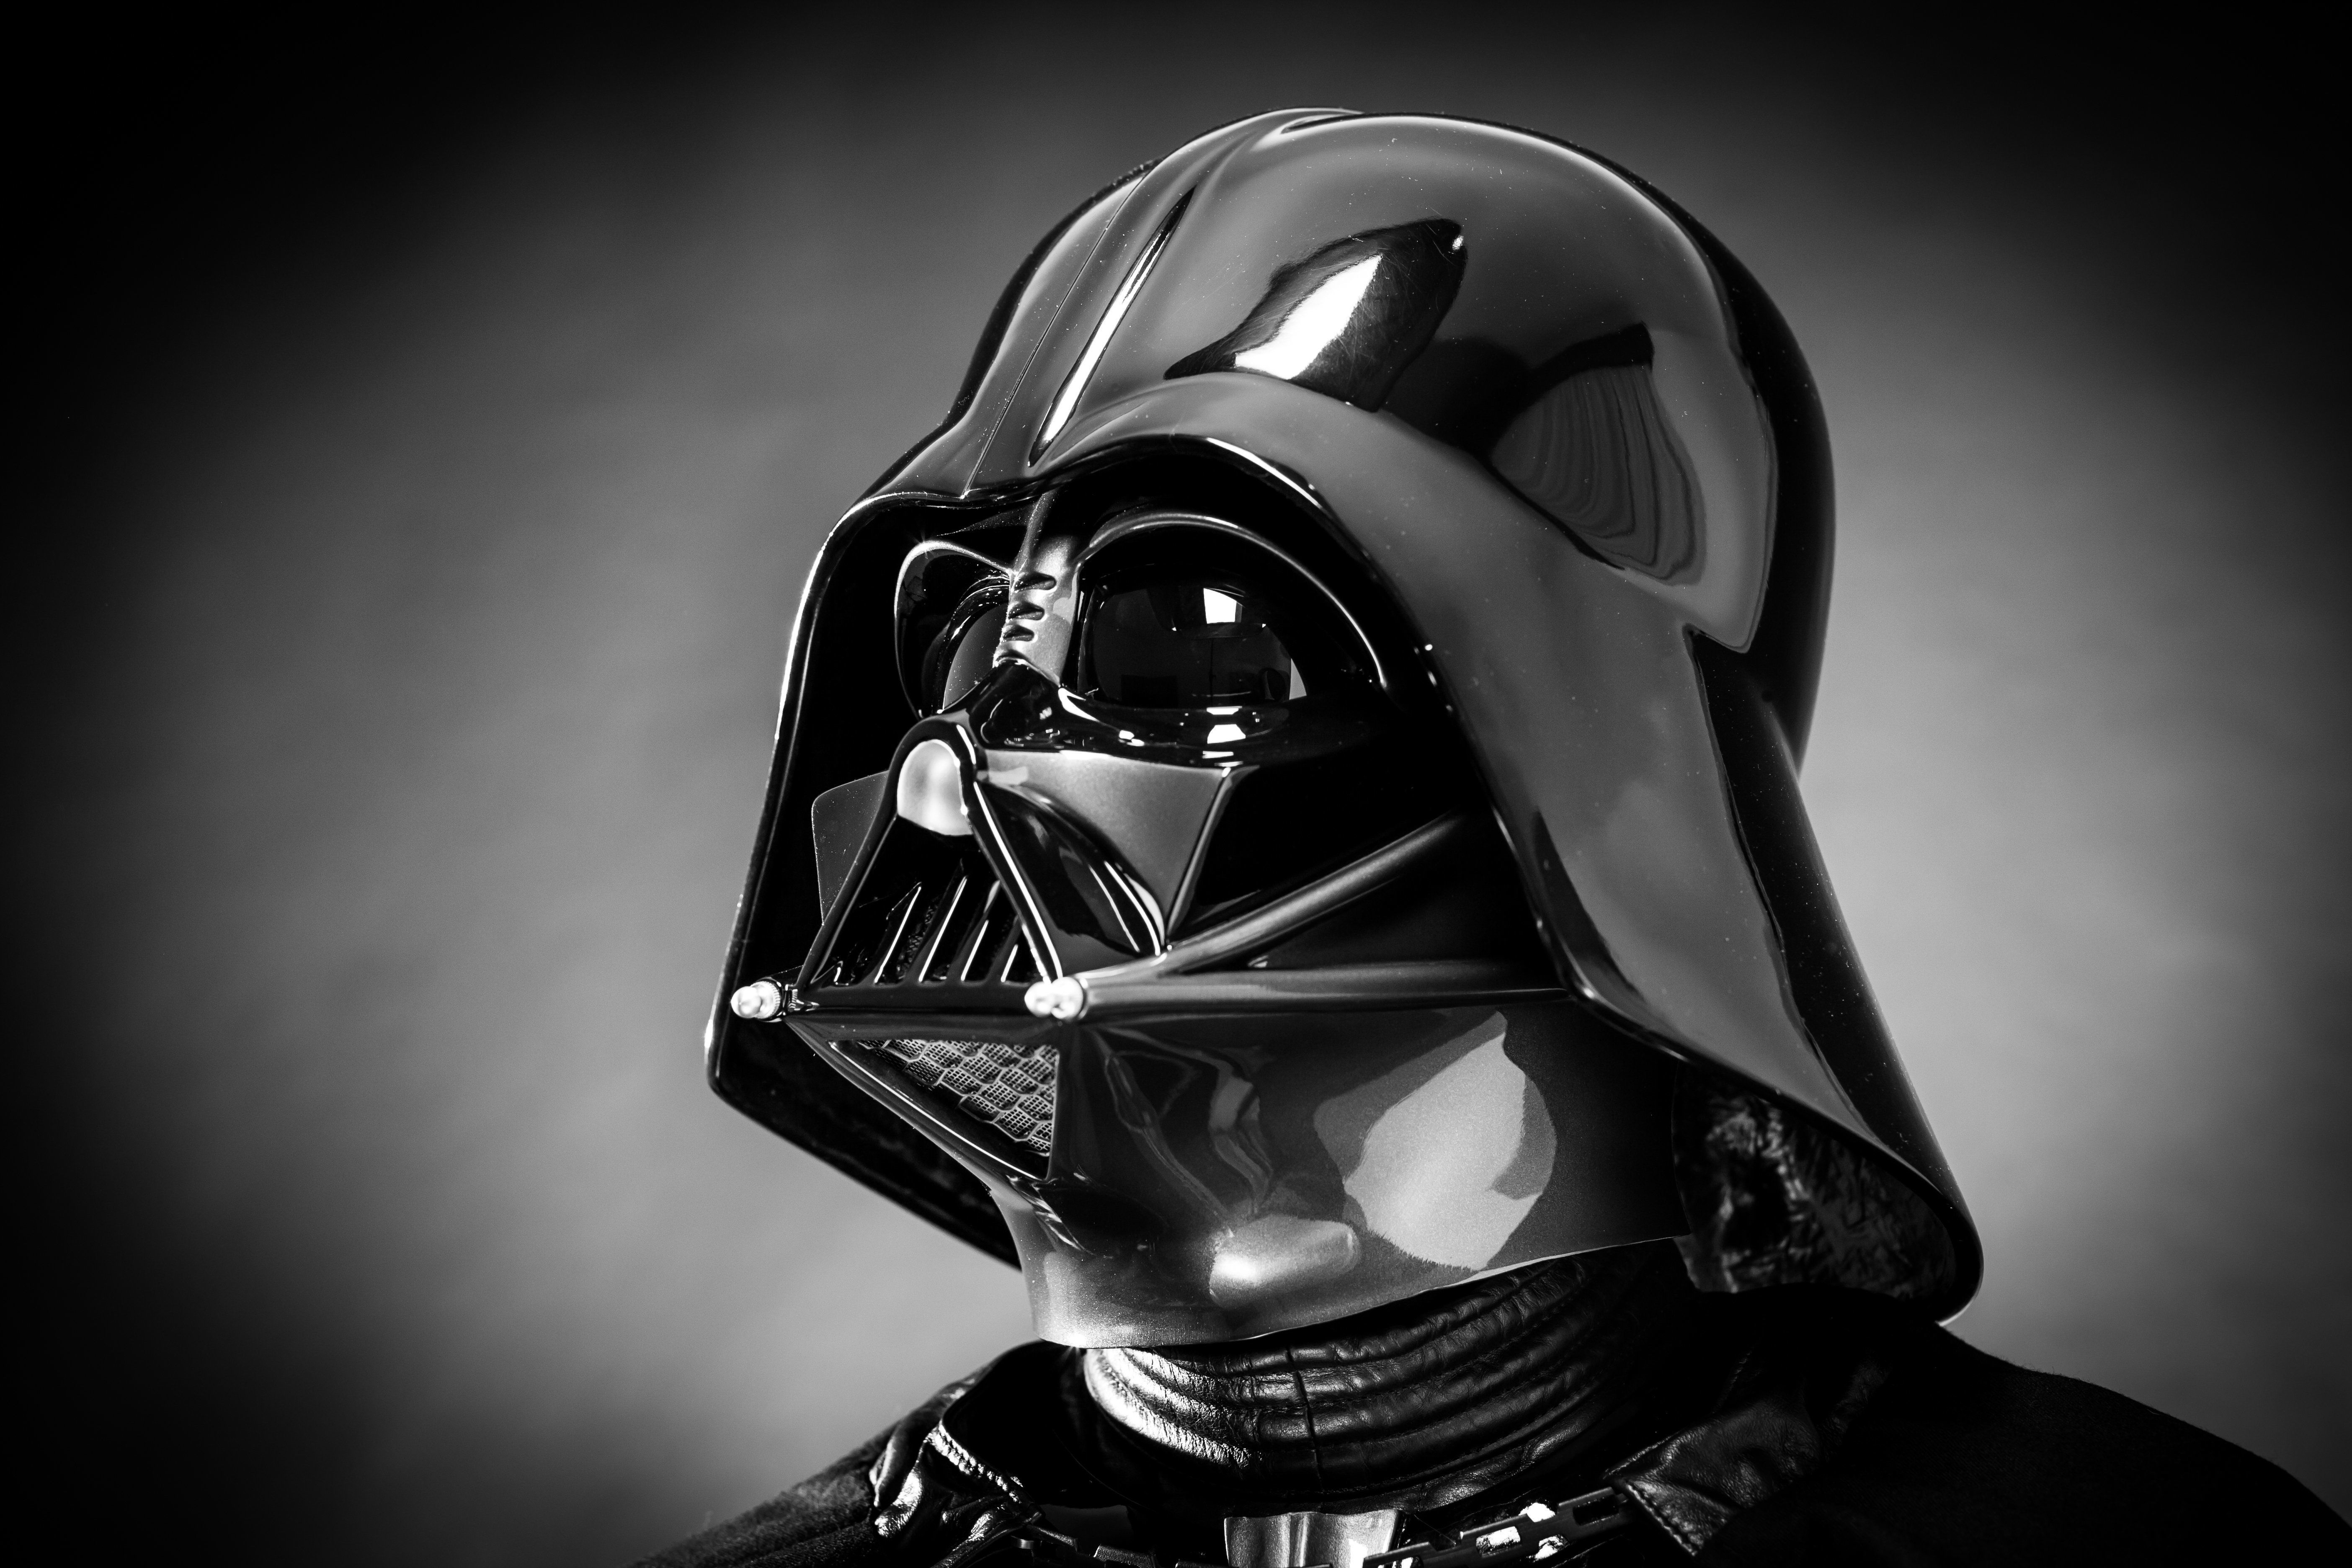 SAN BENEDETTO DEL TRONTO, ITALY. DECEMBER 5, 2014. Helmet of a replica of the costume of Darth Vader . Darth Vader or Dart Fener is a fictional character of Star Wars saga. Black and white picture